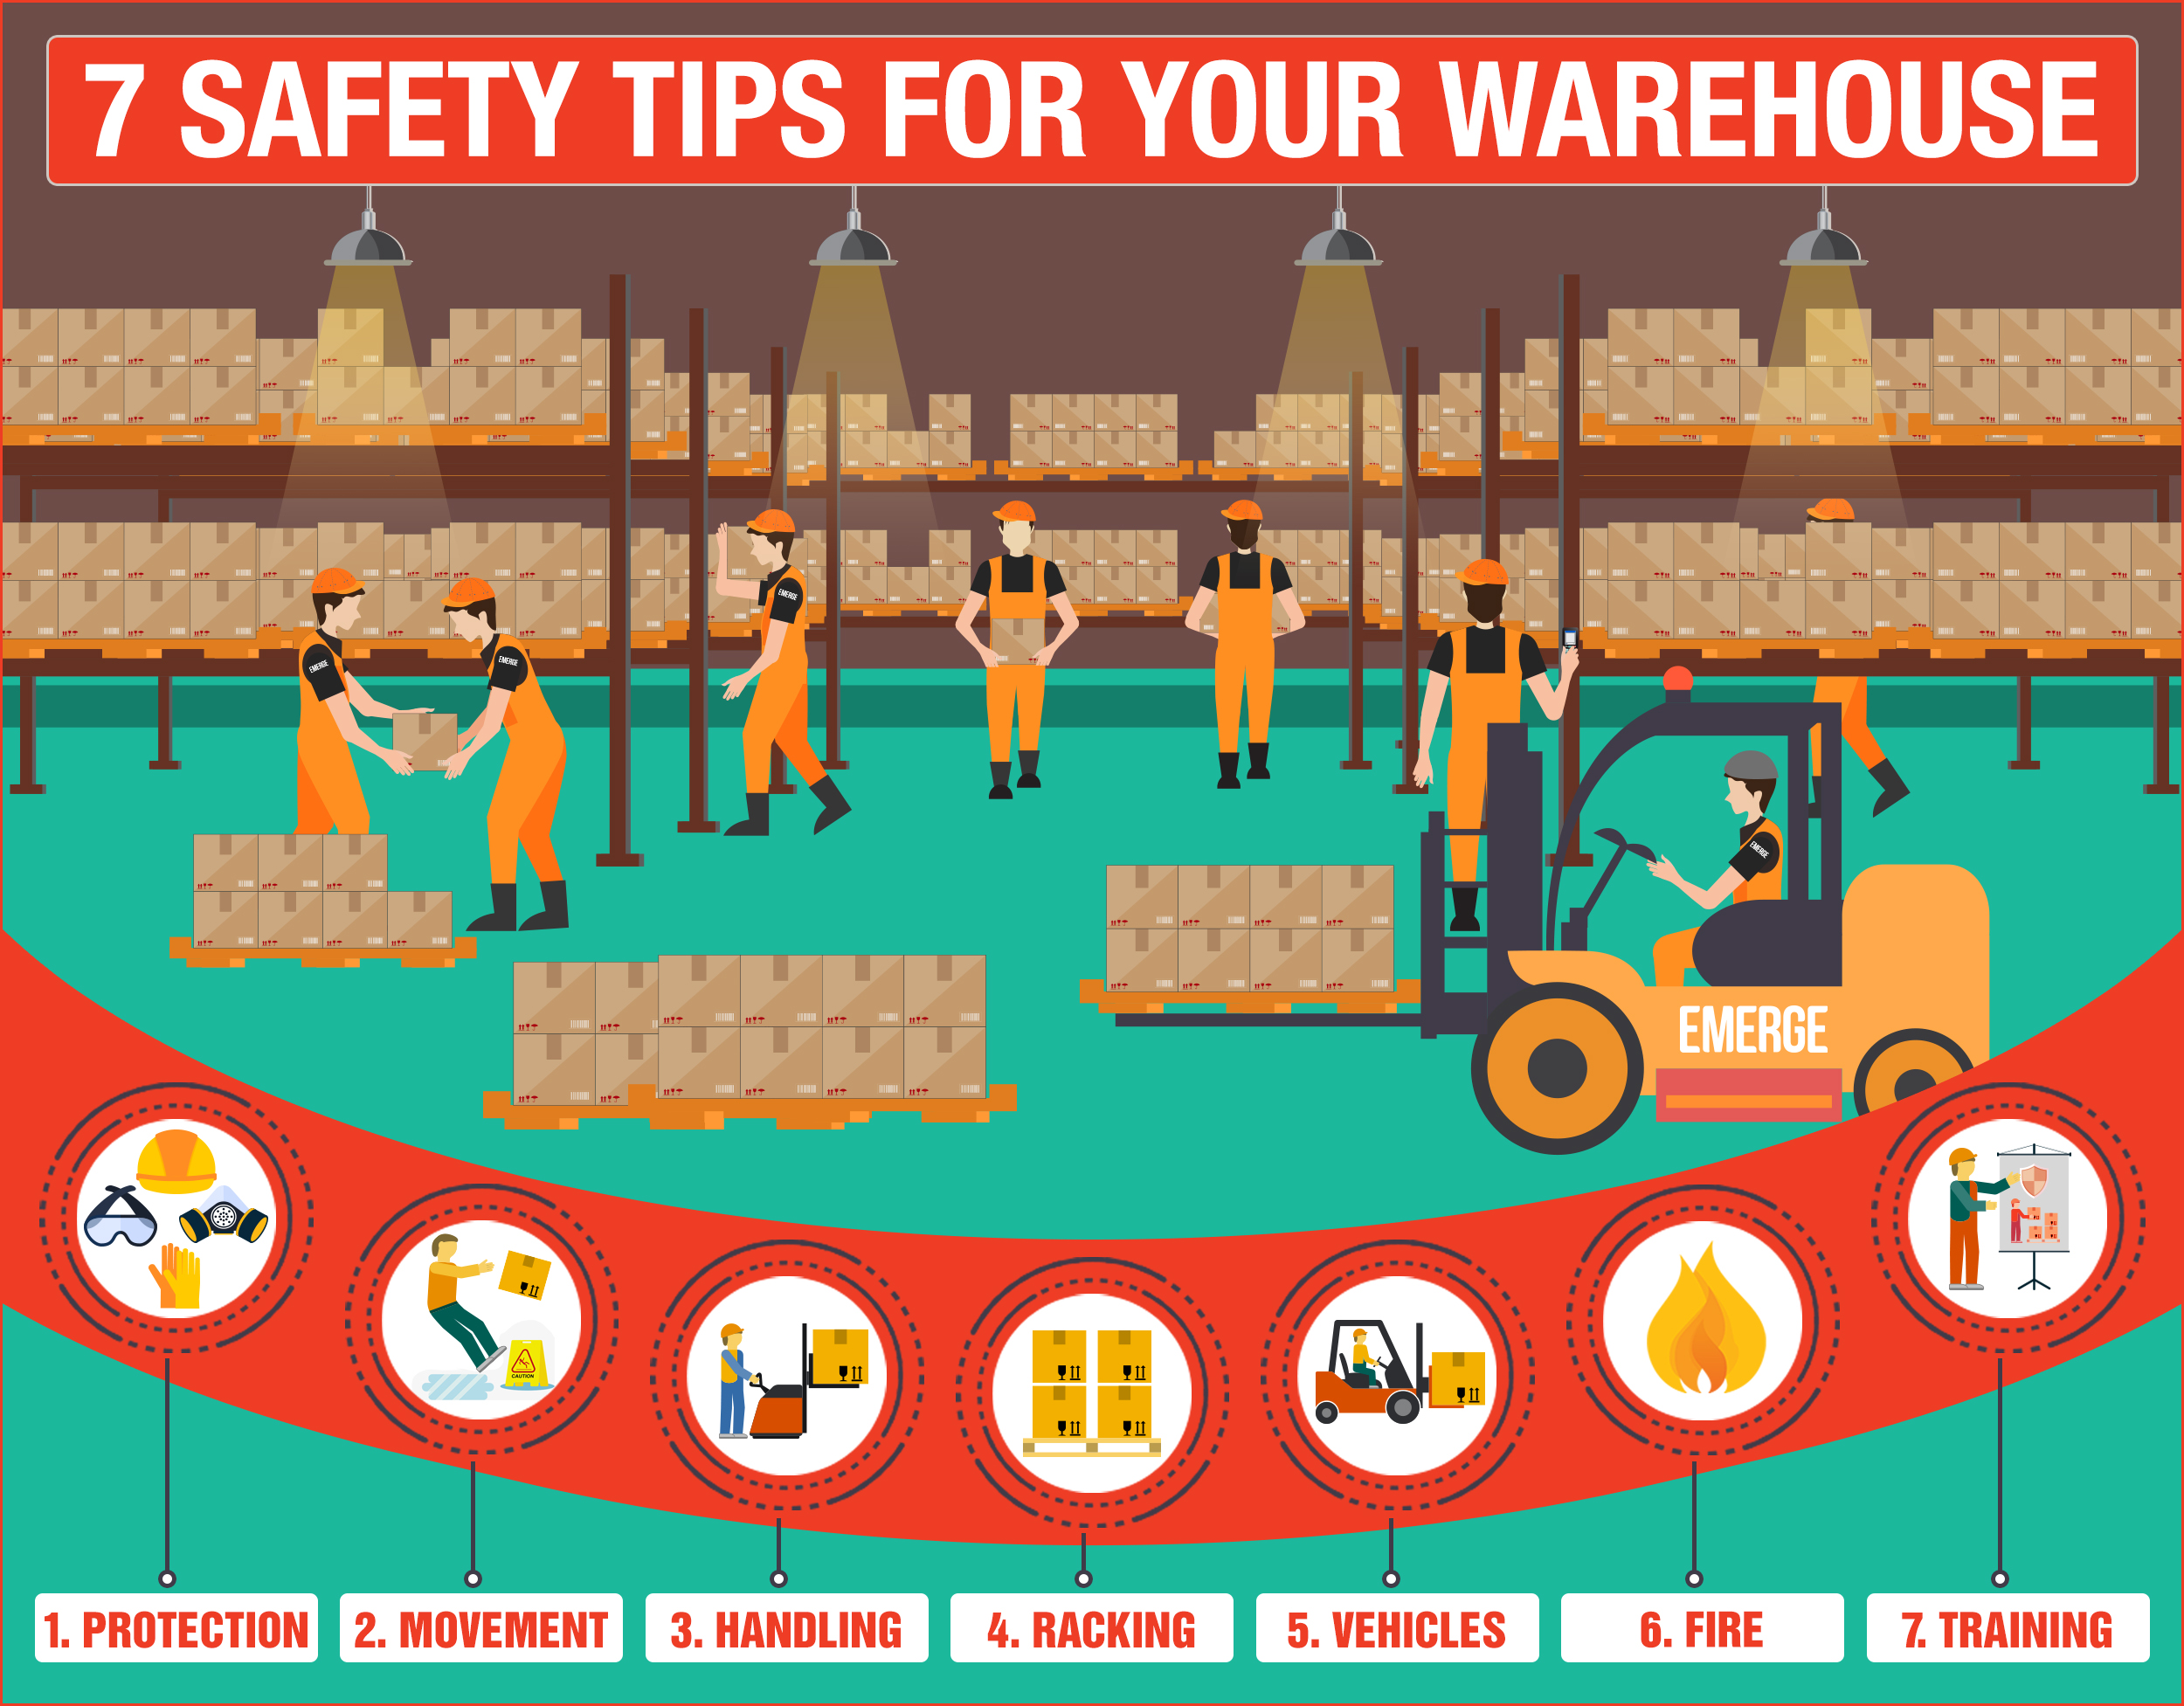 7 Safety Tips You Can Implement For Your Warehouse Now Emerge